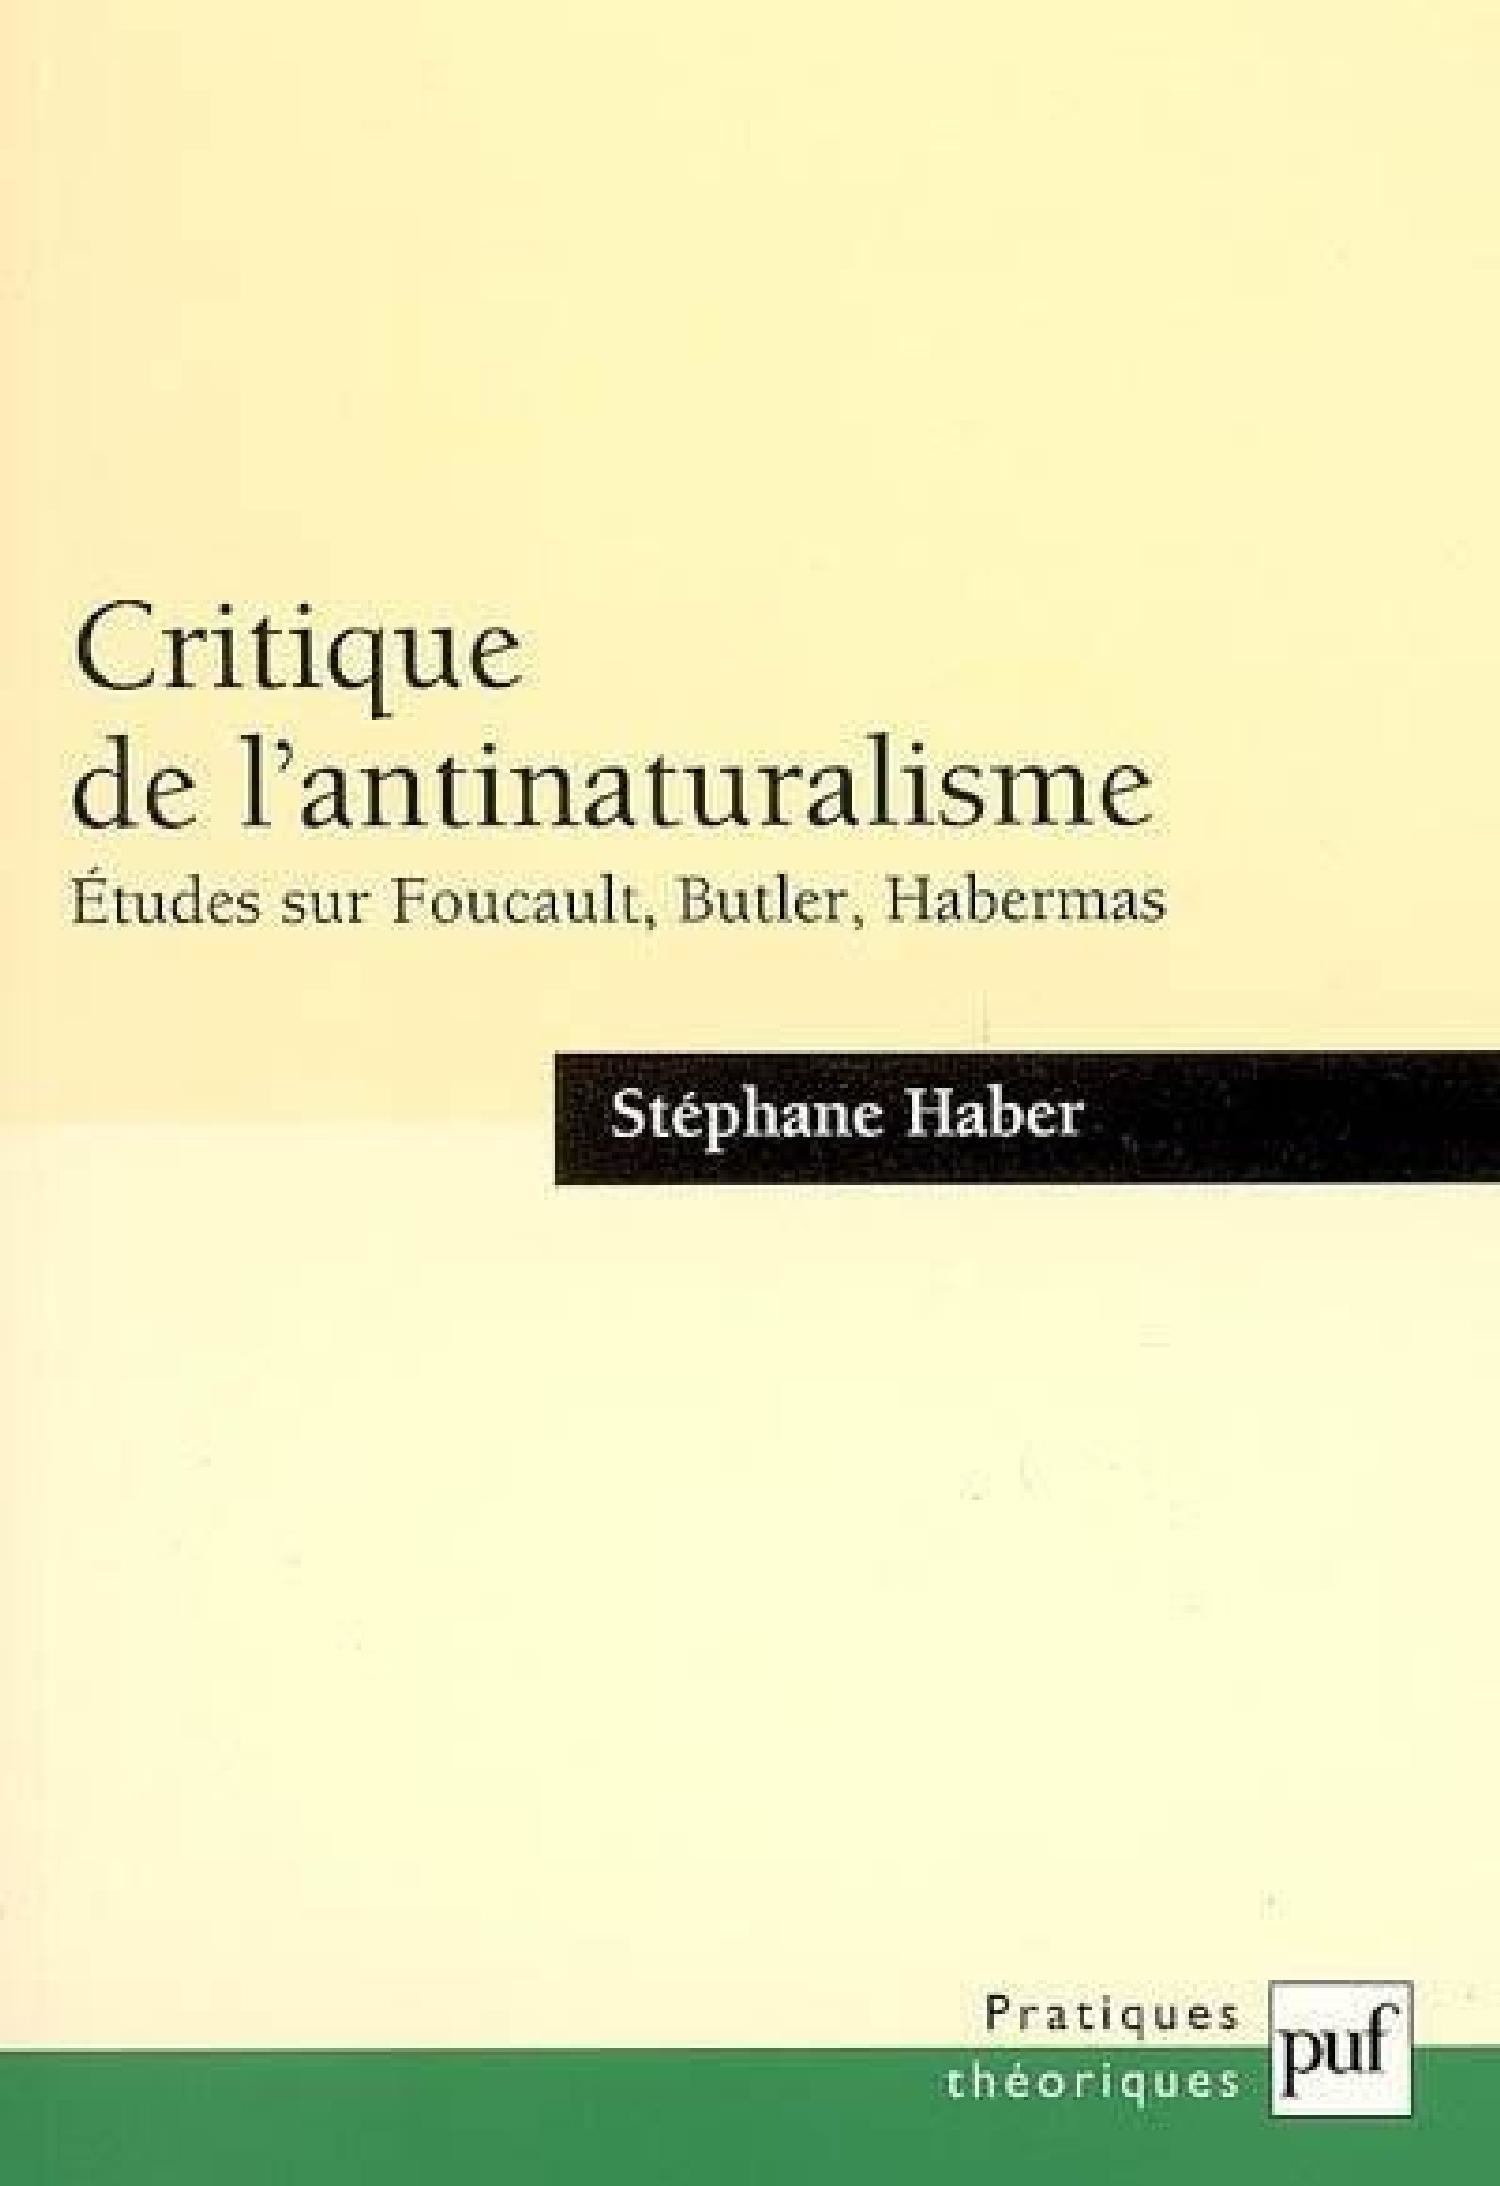 Critique de l'antinaturalisme De Stéphane Haber - Presses Universitaires de France